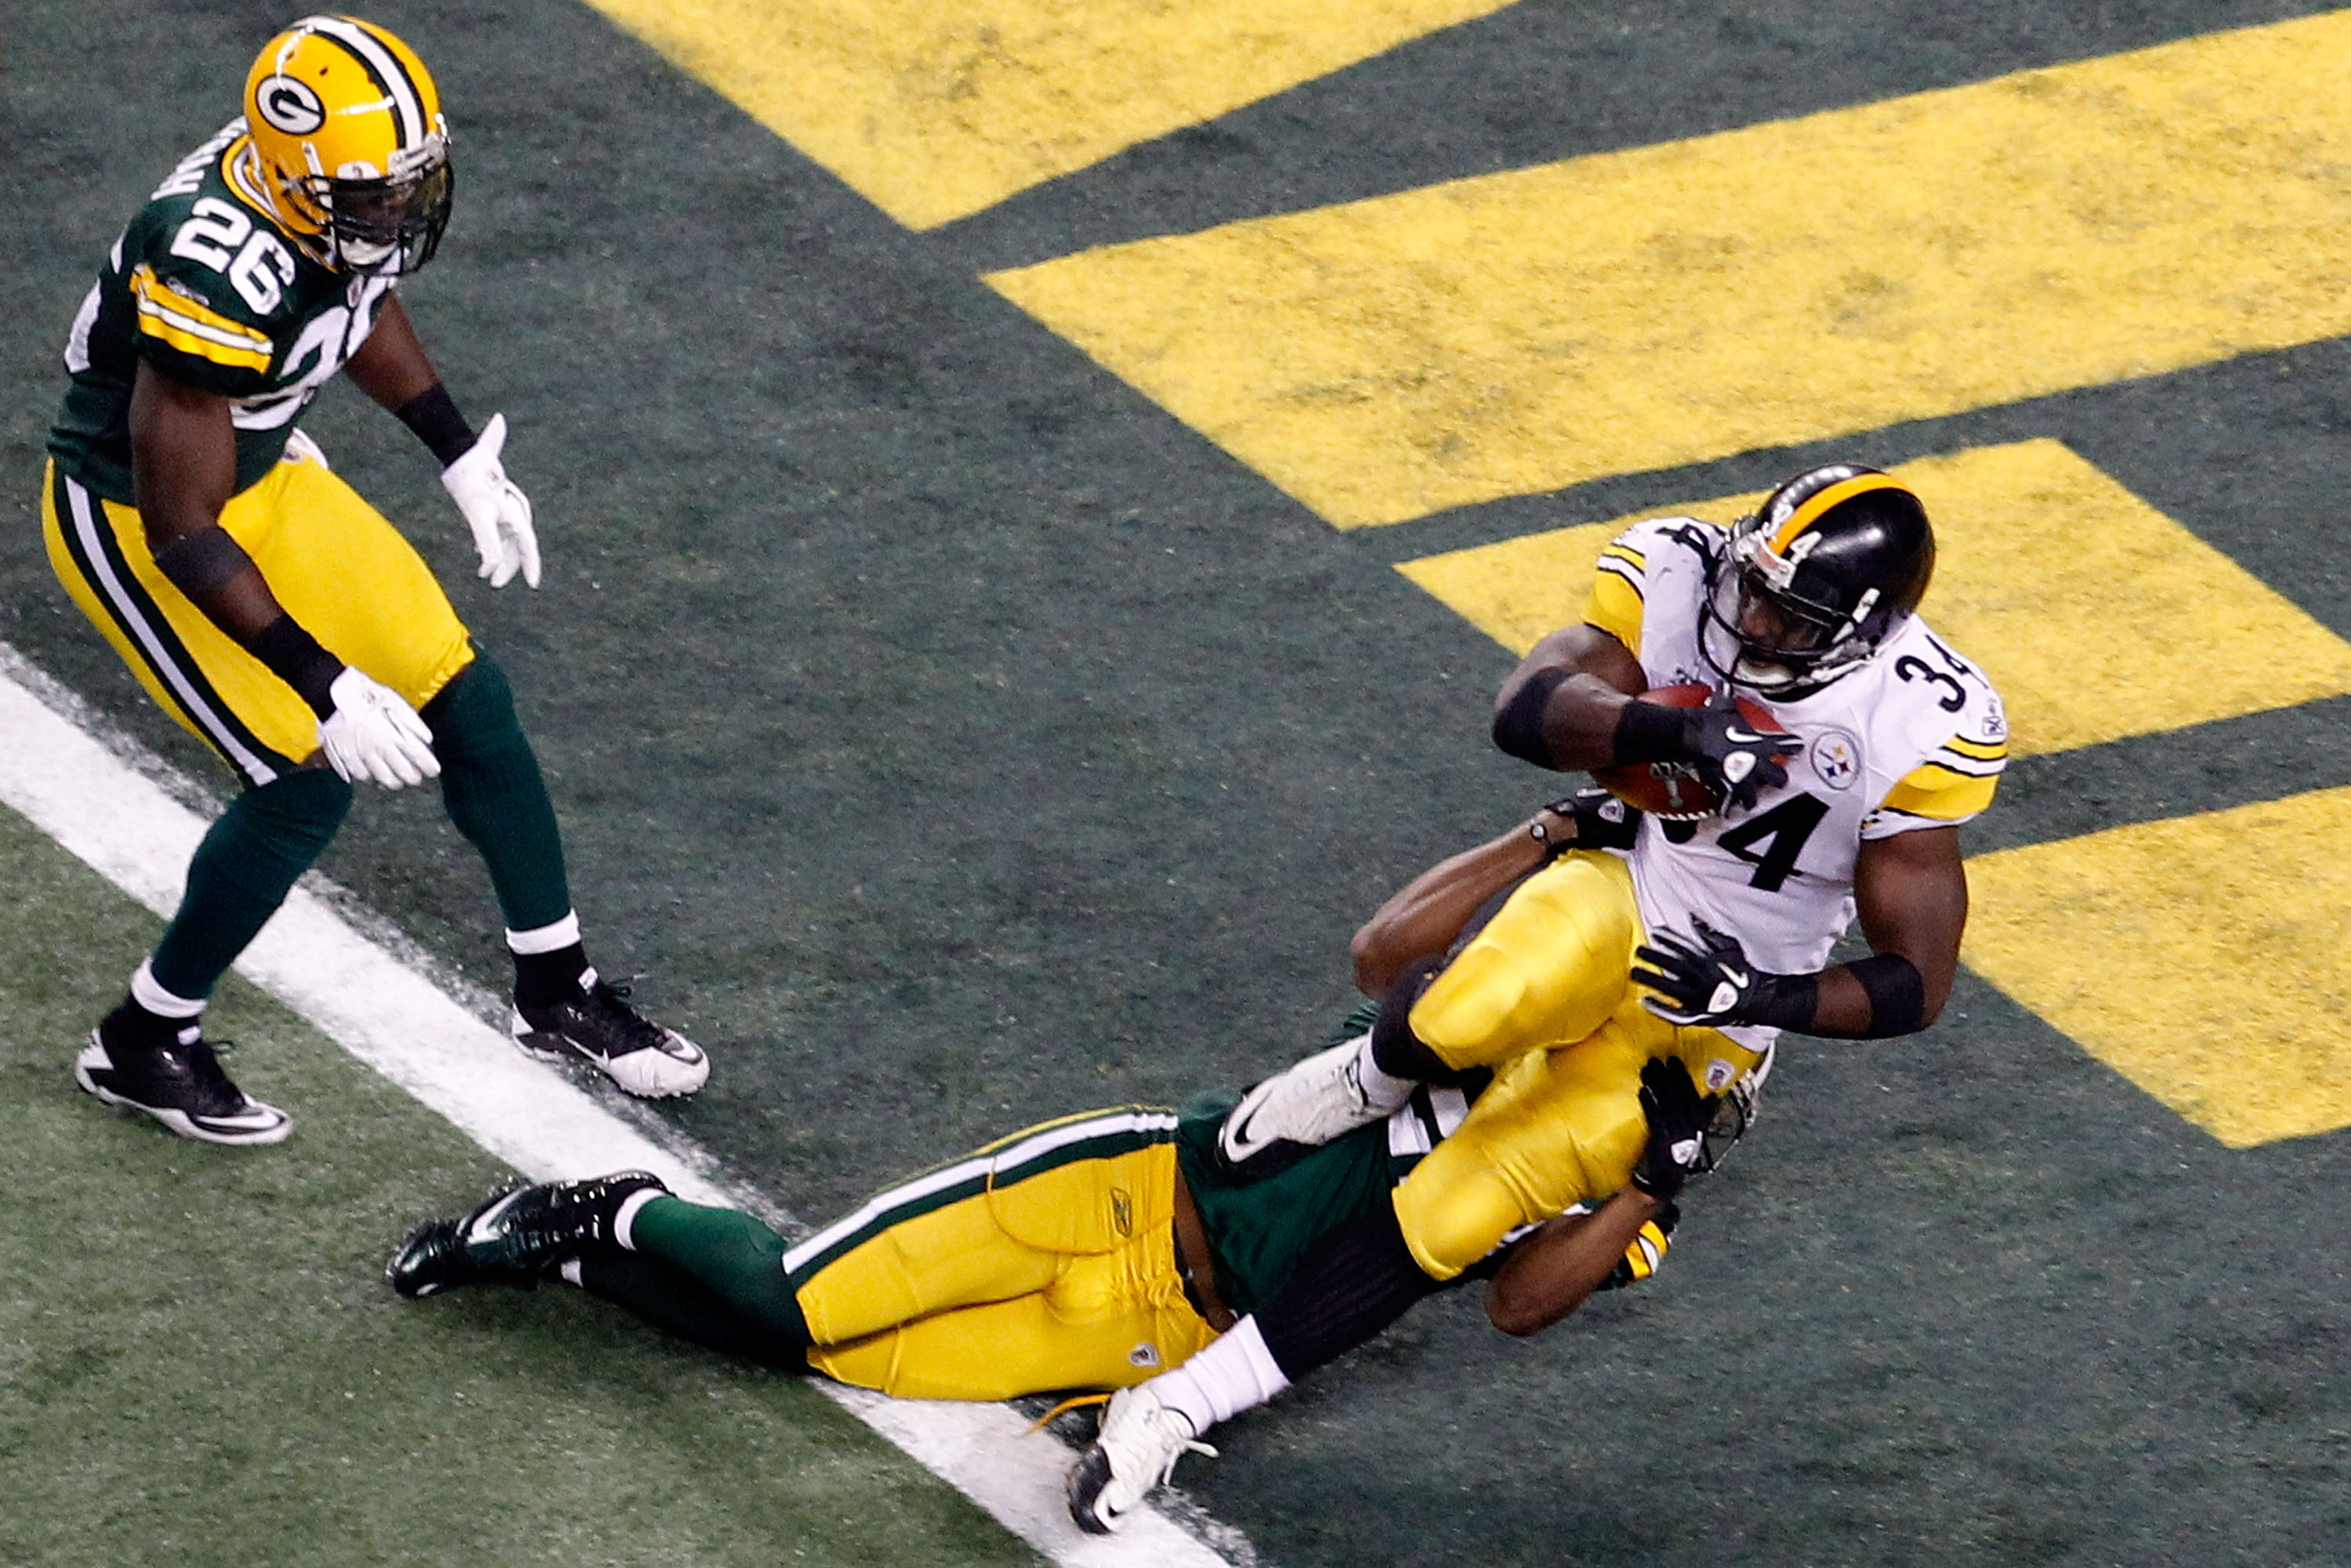 ARLINGTON, TX - FEBRUARY 06:  Rashard Mendenhall #34 of the Pittsburgh Steelers runs for an eight yard touchdown against the tackle of Pat Lee #22 of the Green Bay Packers in the third quarter of Super Bowl XLV at Cowboys Stadium on February 6, 2011 in Ar